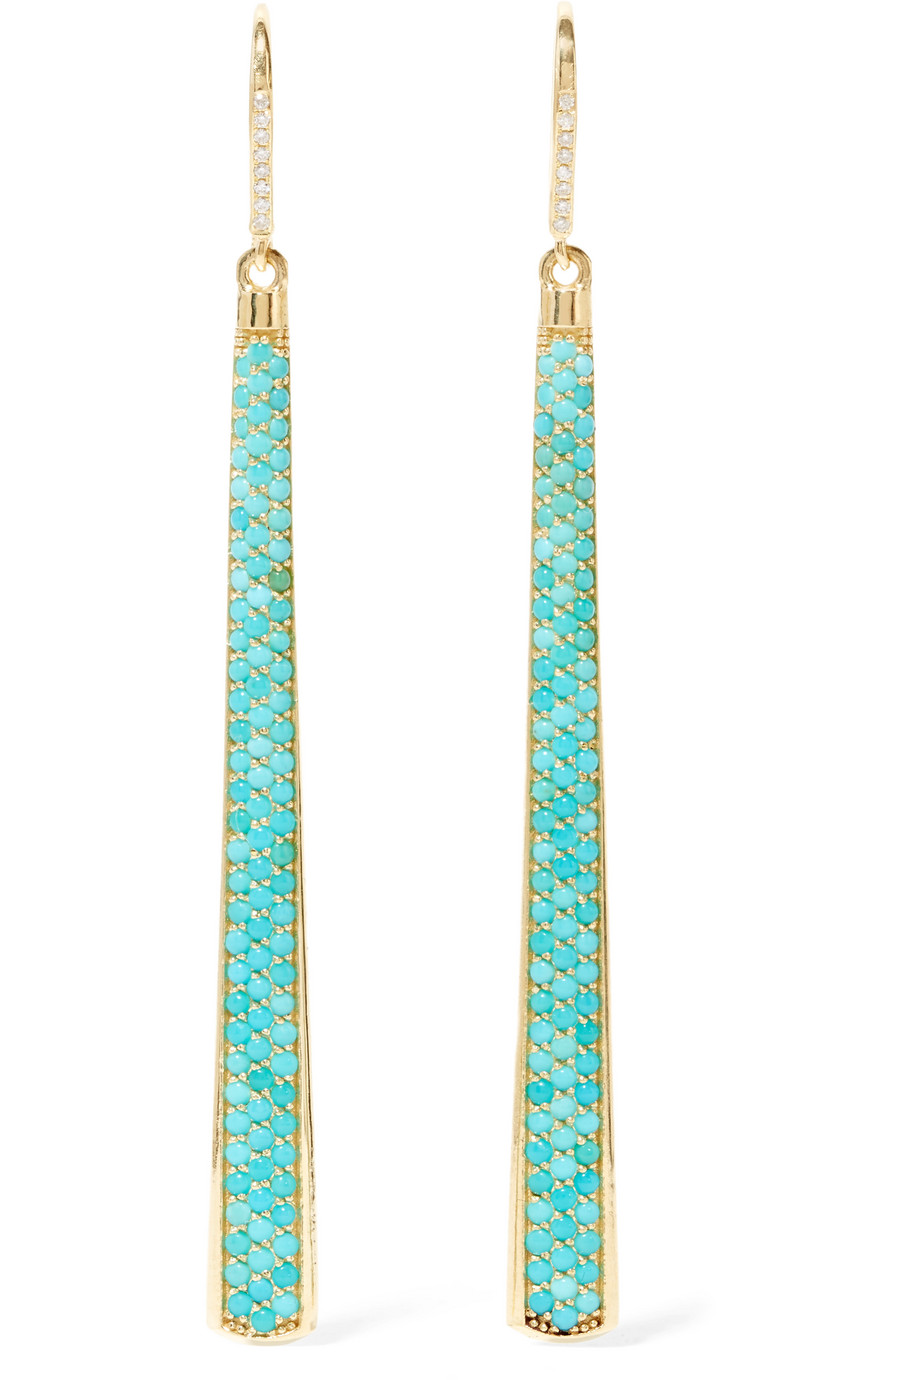 Jennifer Meyer 18-Karat Gold, Turquoise and Diamond Earrings, Gold/Turquoise, Women's